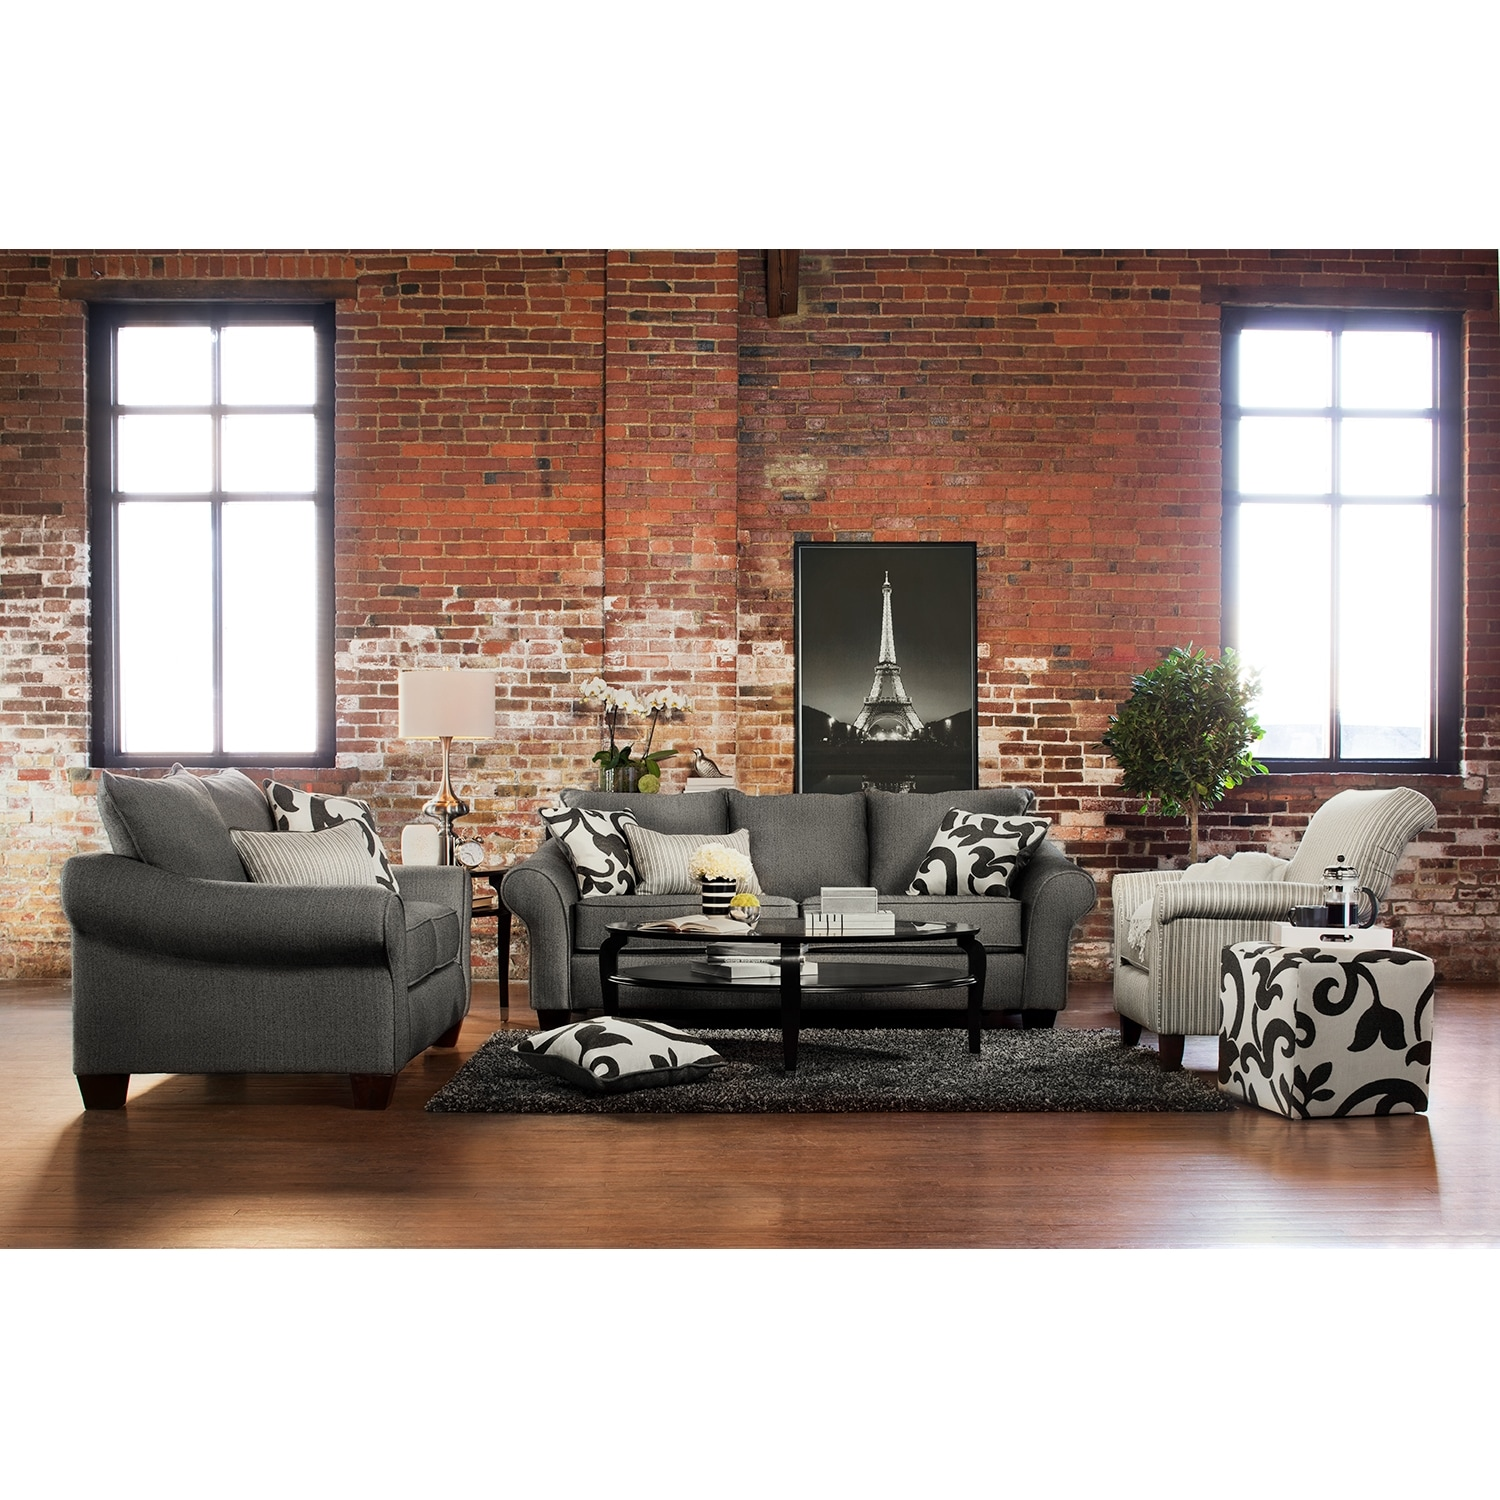 Furniture Of America Living Room Collections: American Signature Furniture